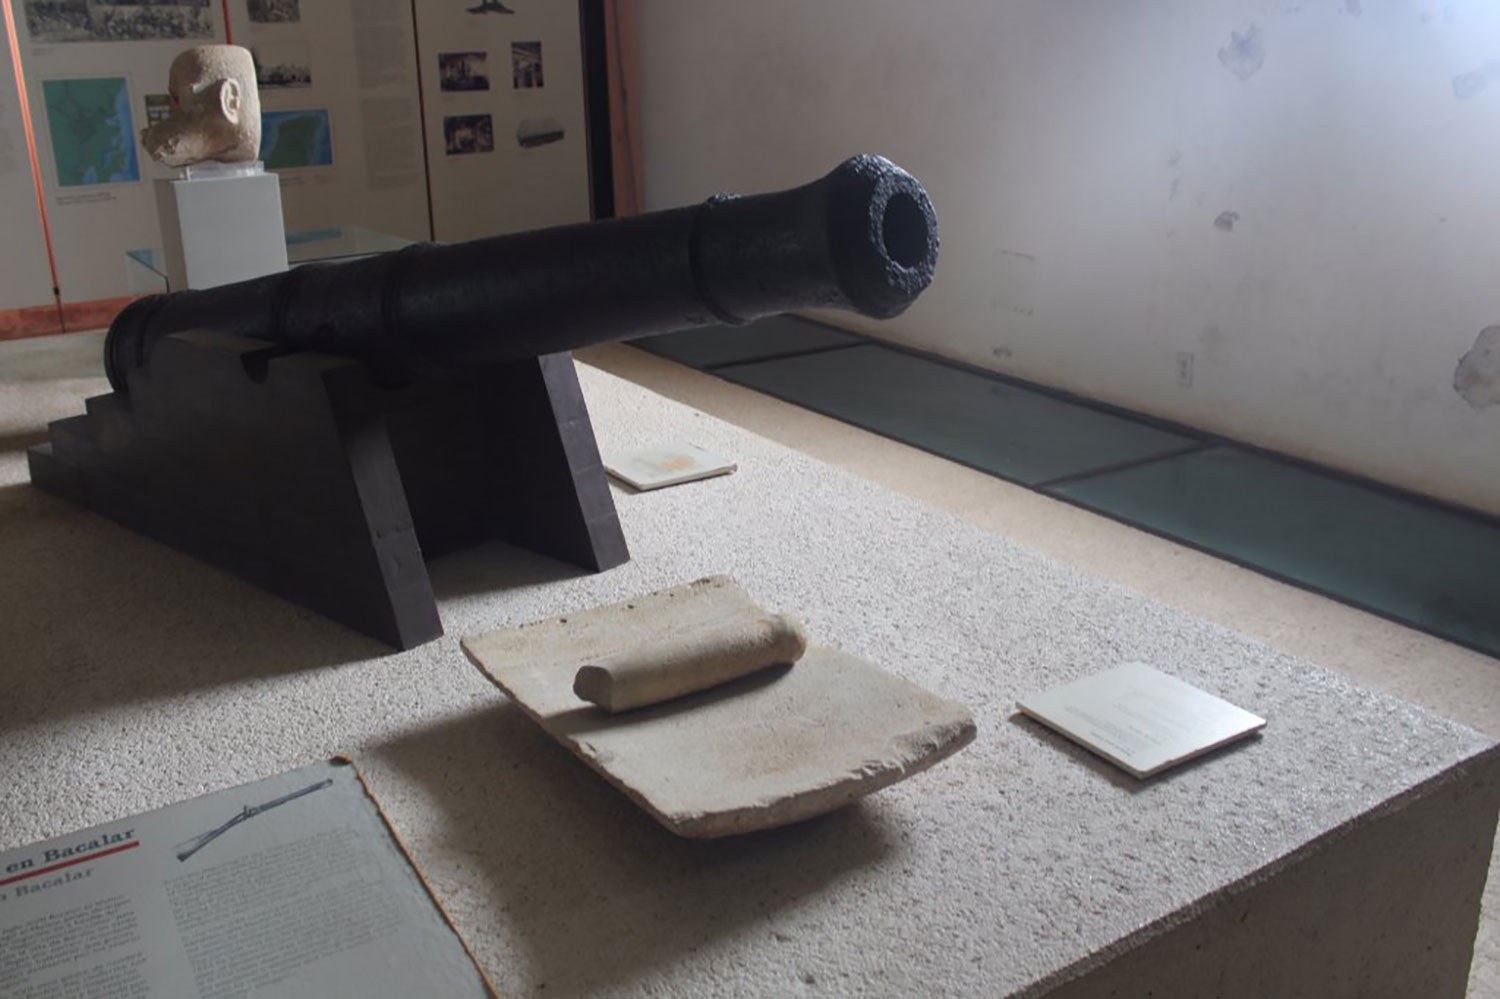 Two objects, two symbols of different cultures: metate (a Maya stone for grinding corn) and a Spanish cannon.